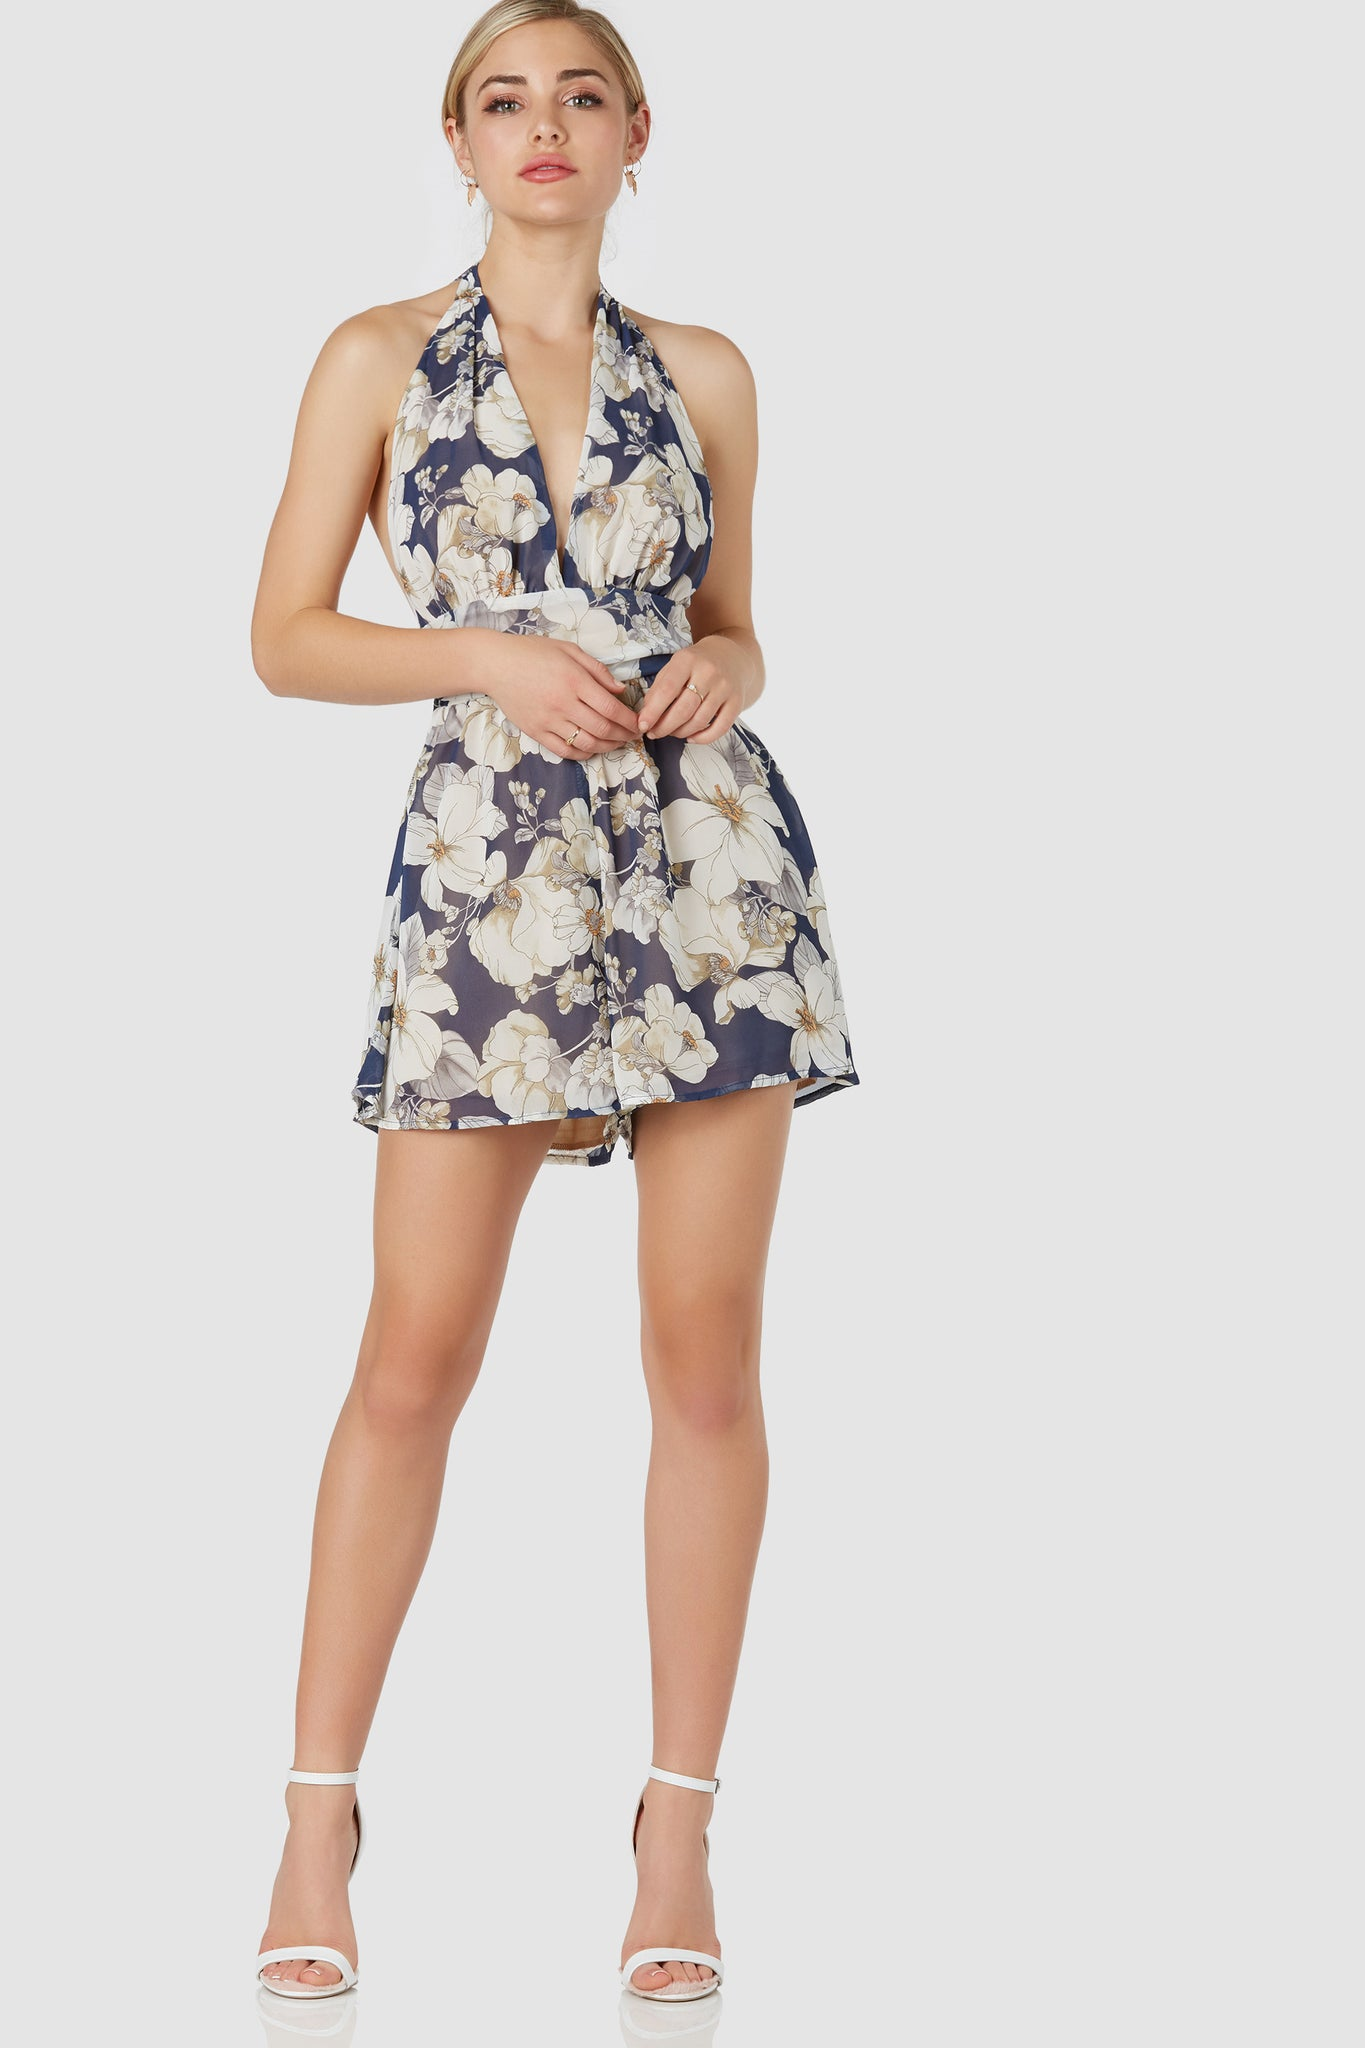 Flattering sleeveless romper with chic halter neckline and open back. Floral print throughout with smooth lining and ties for closure.